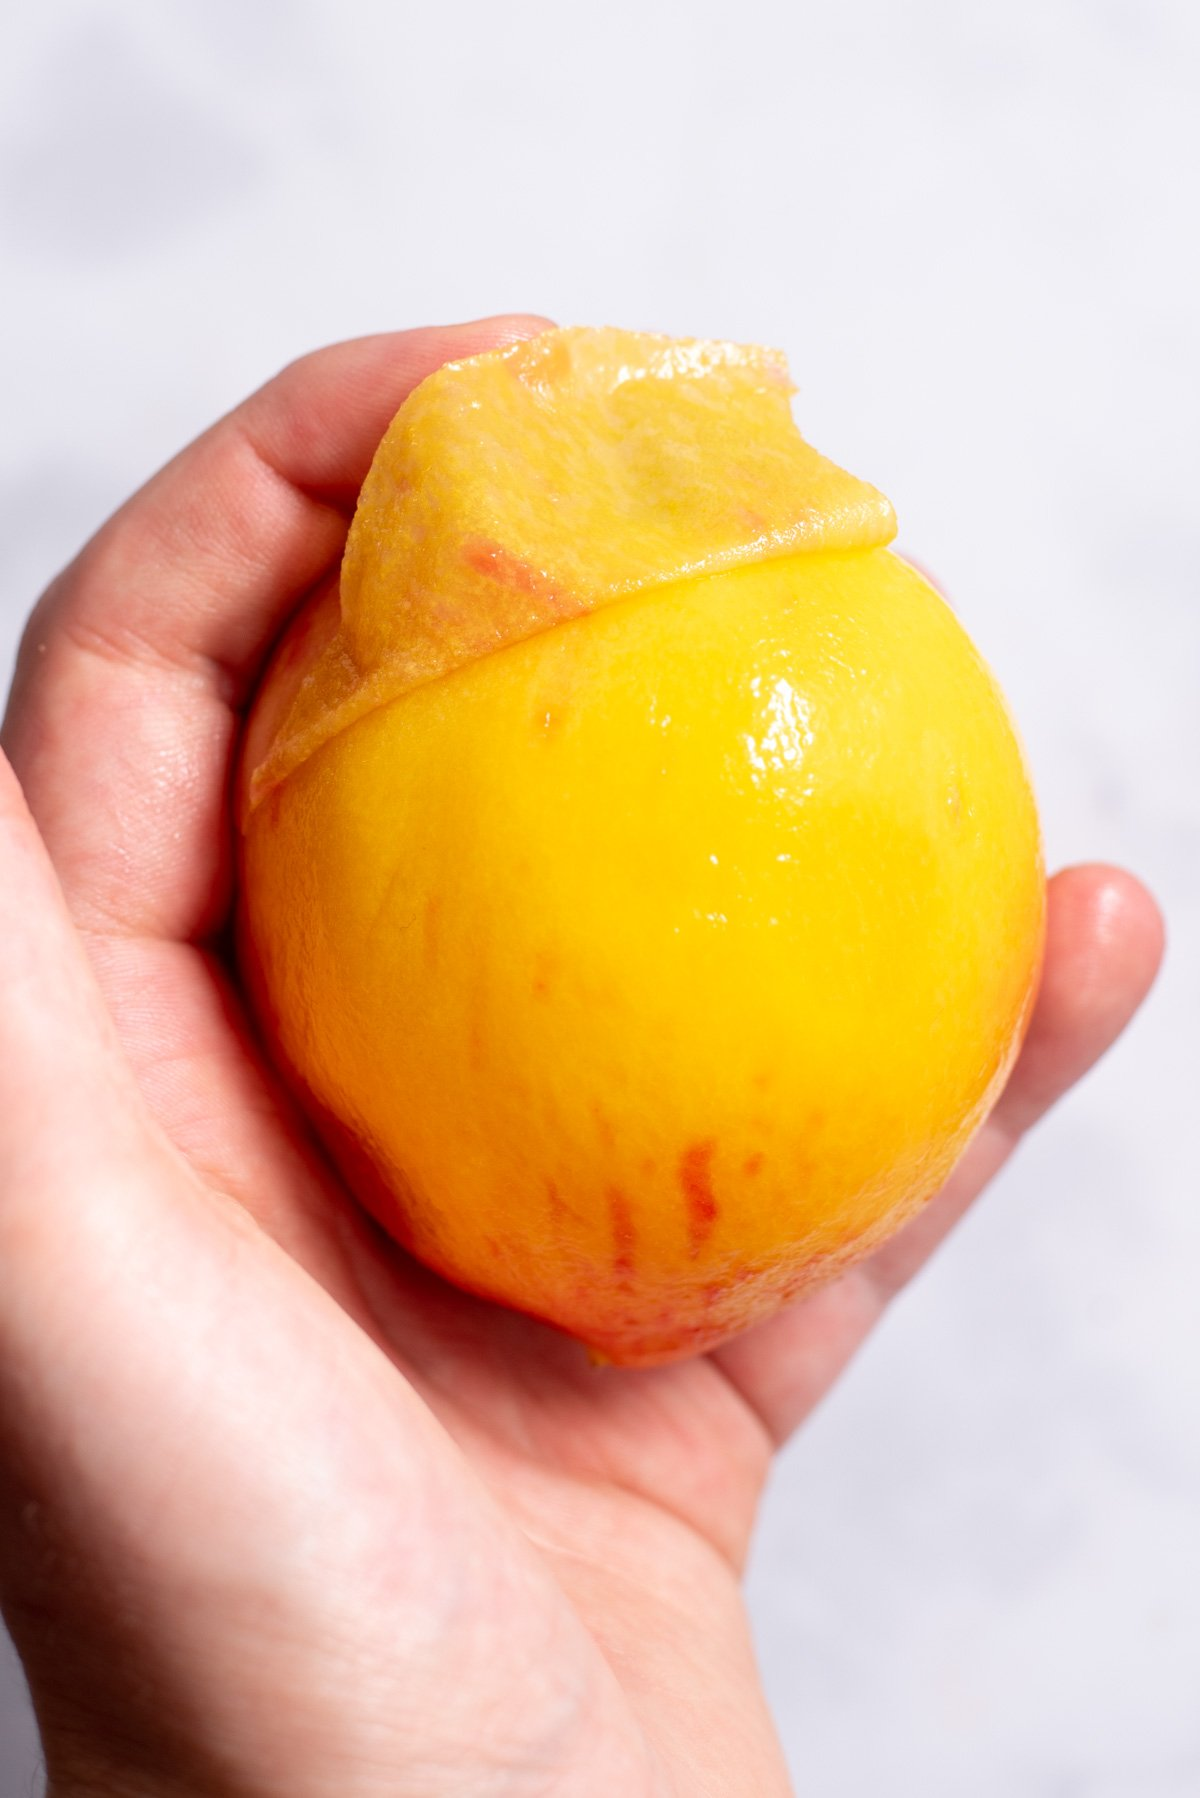 Peach with peeled skin in hand